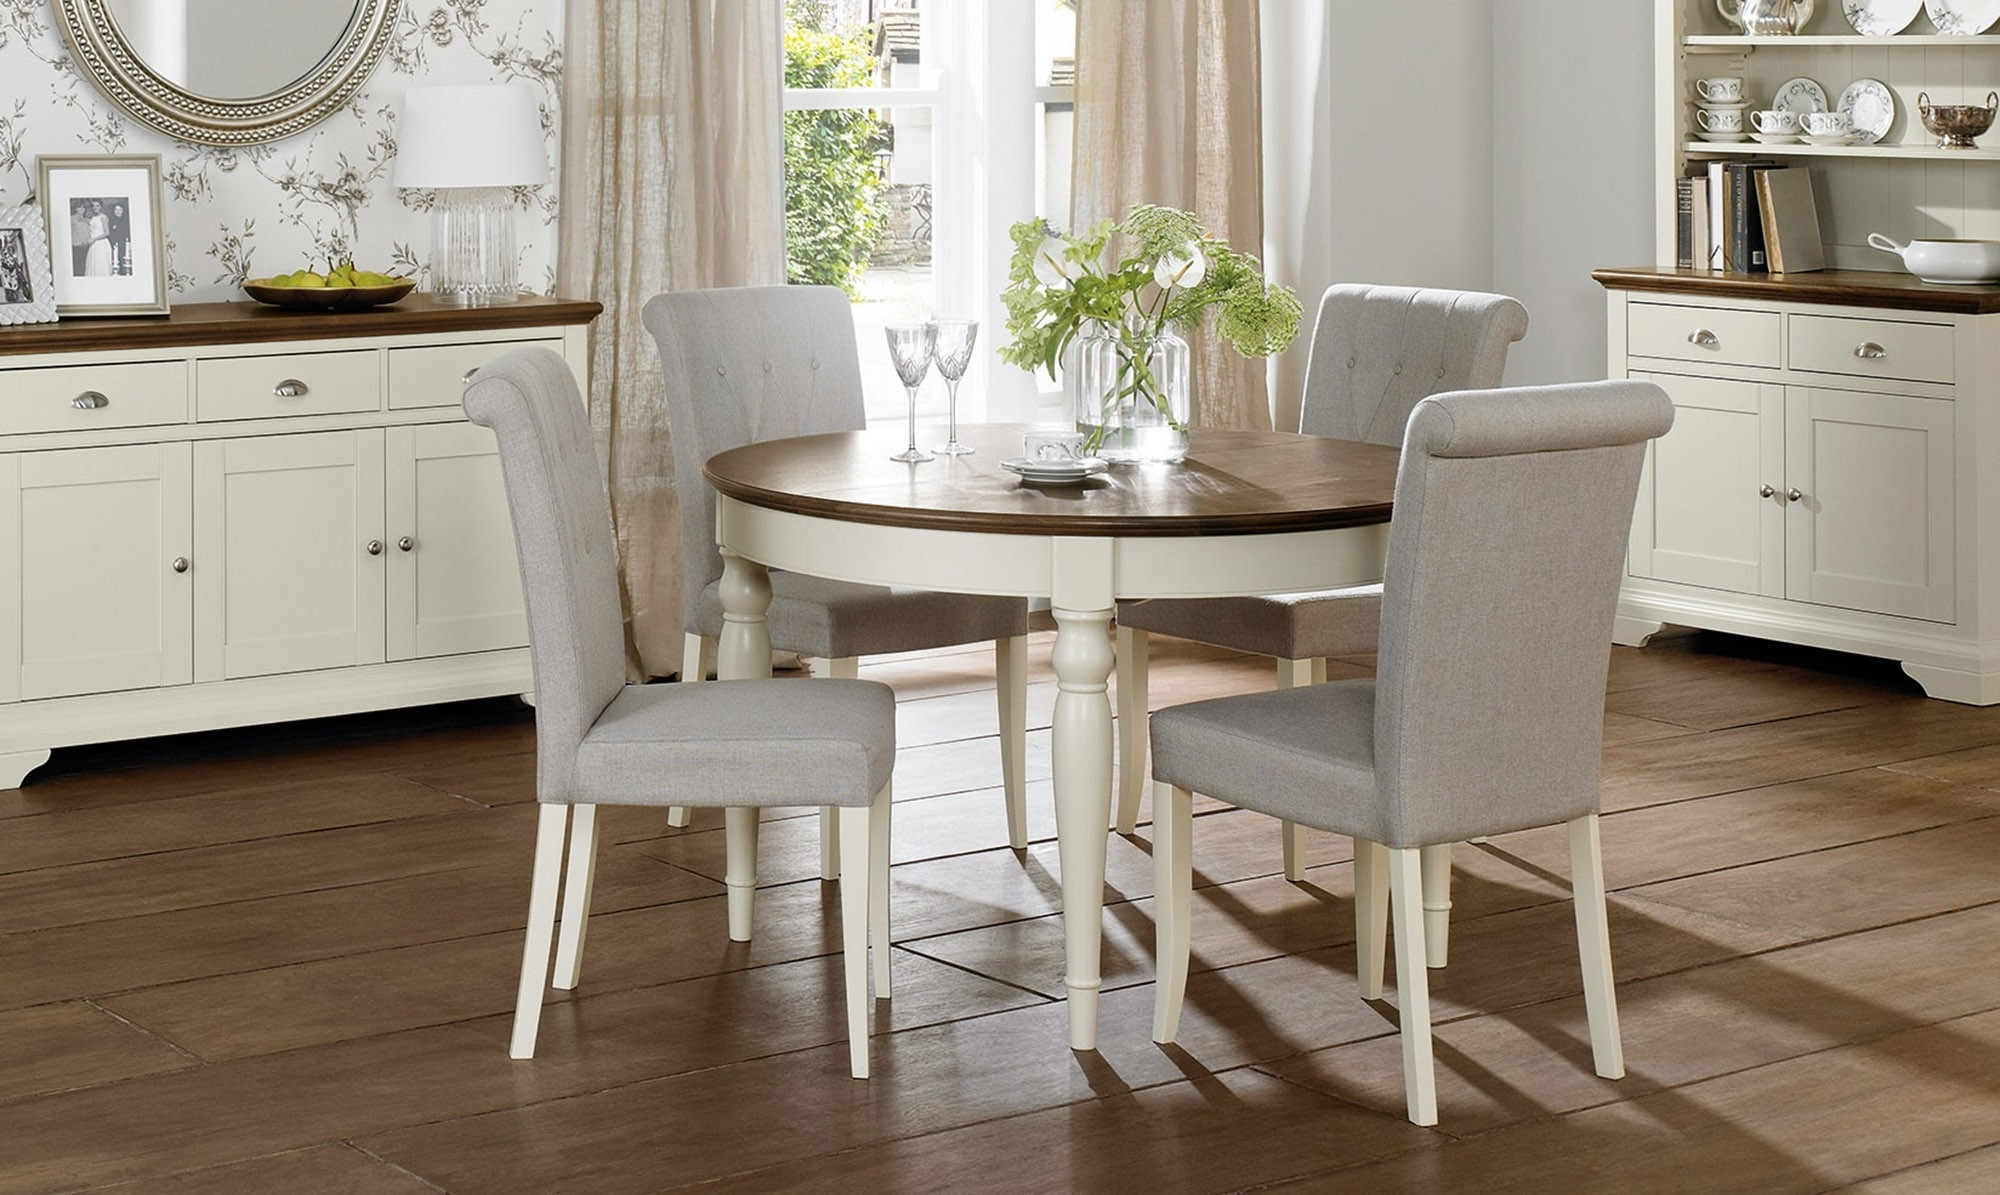 2018 Georgie Round Extending Dining Table 4 Chairs Grey, Extended Dining In Extended Round Dining Tables (View 2 of 25)